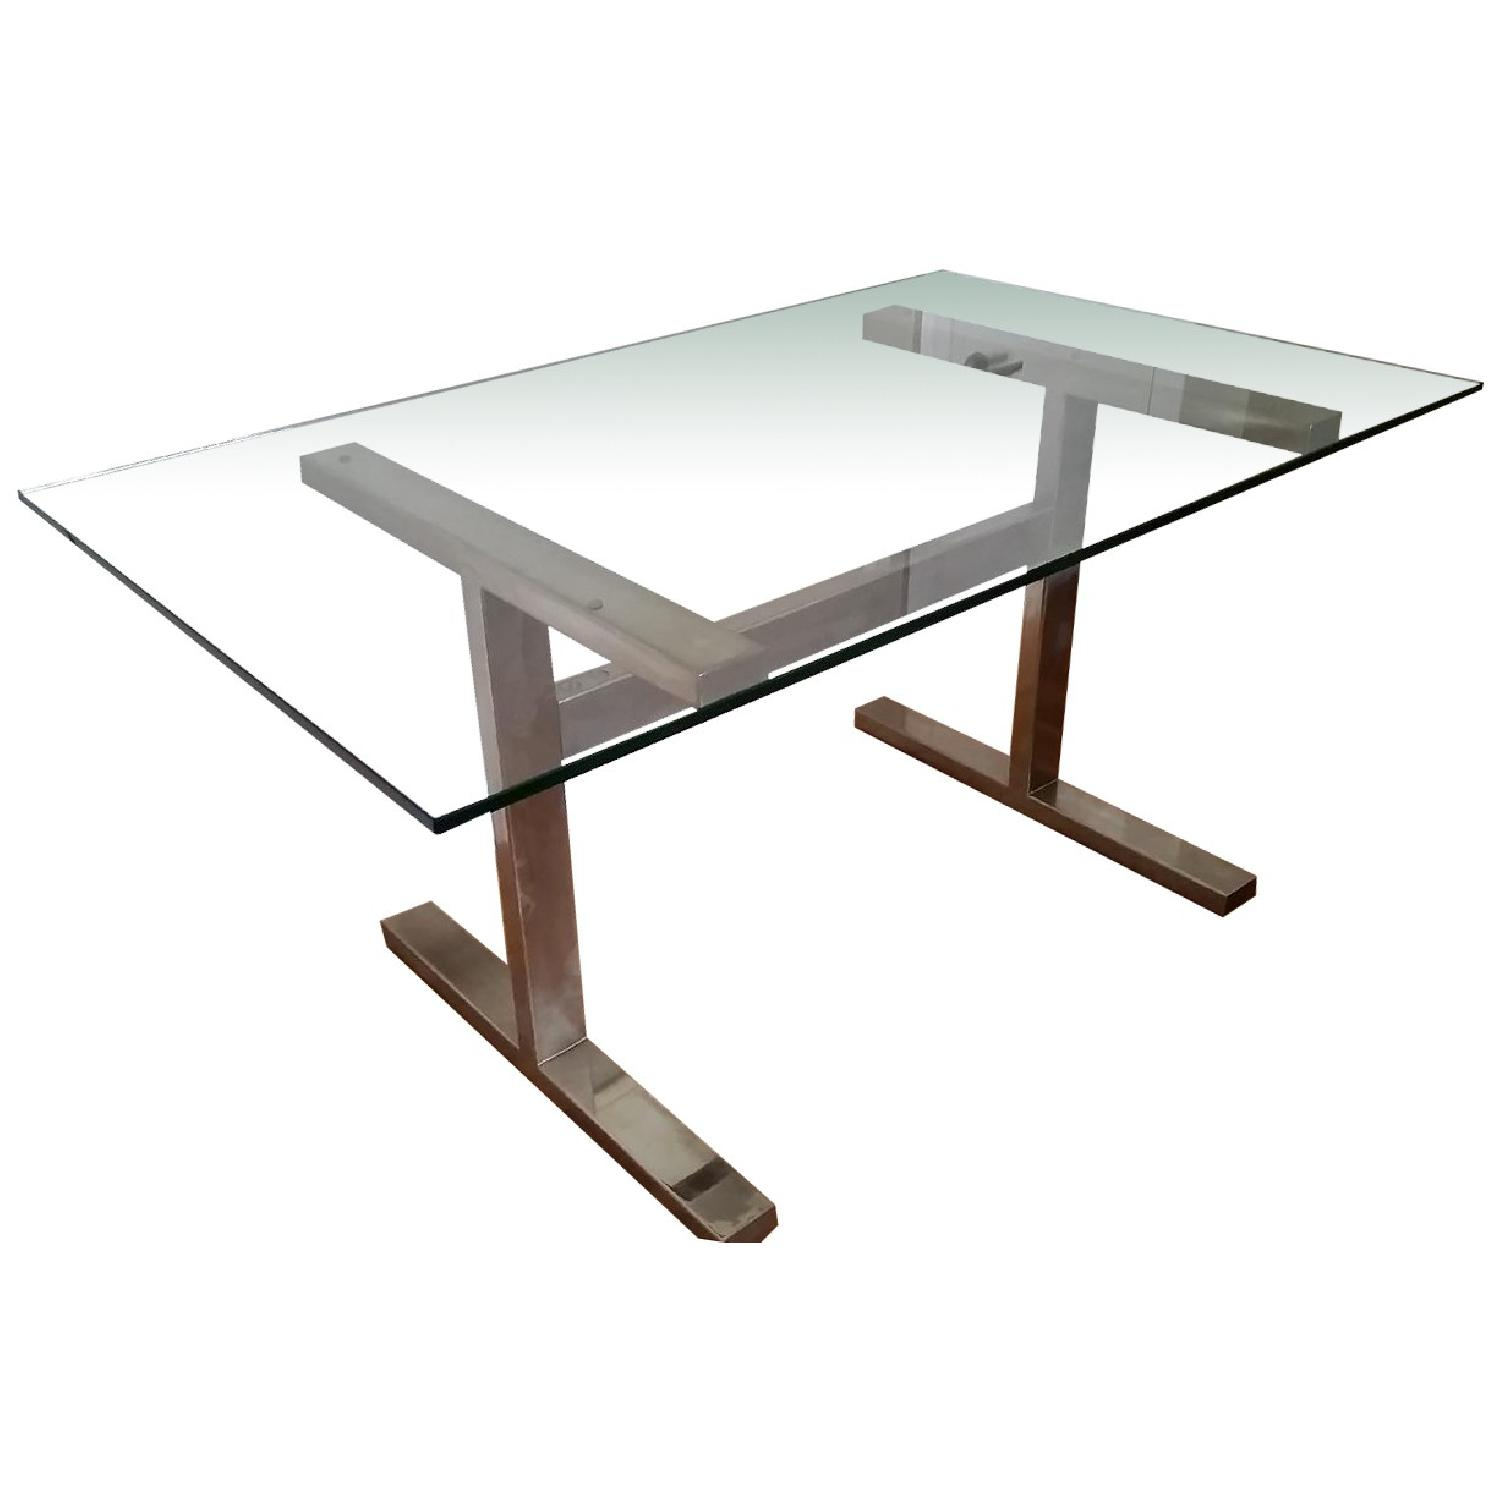 Williams-Sonoma Mercer Glass Table with Metal Frame - image-0